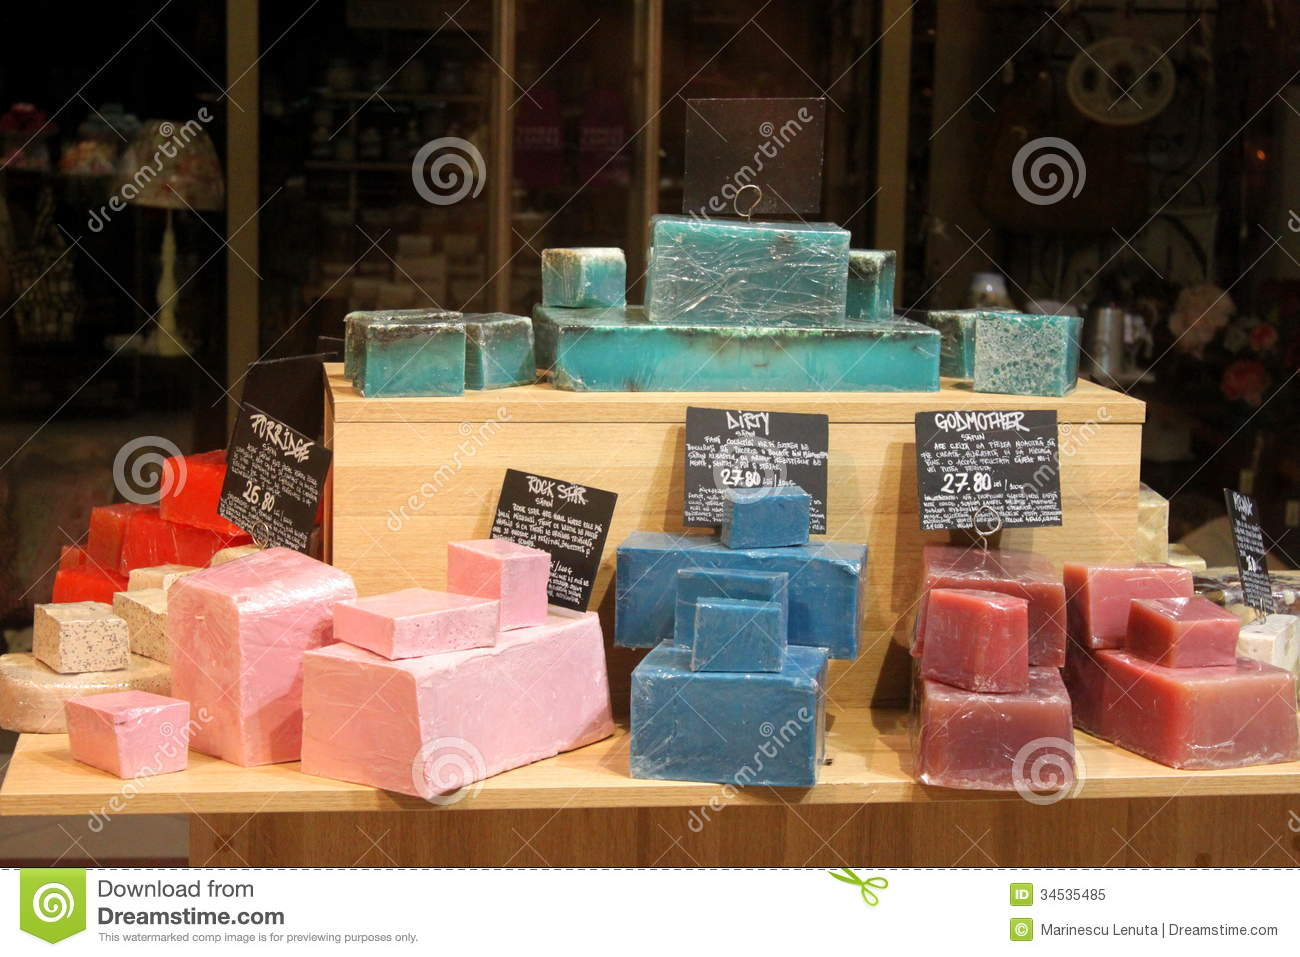 Soaps with natural flavors